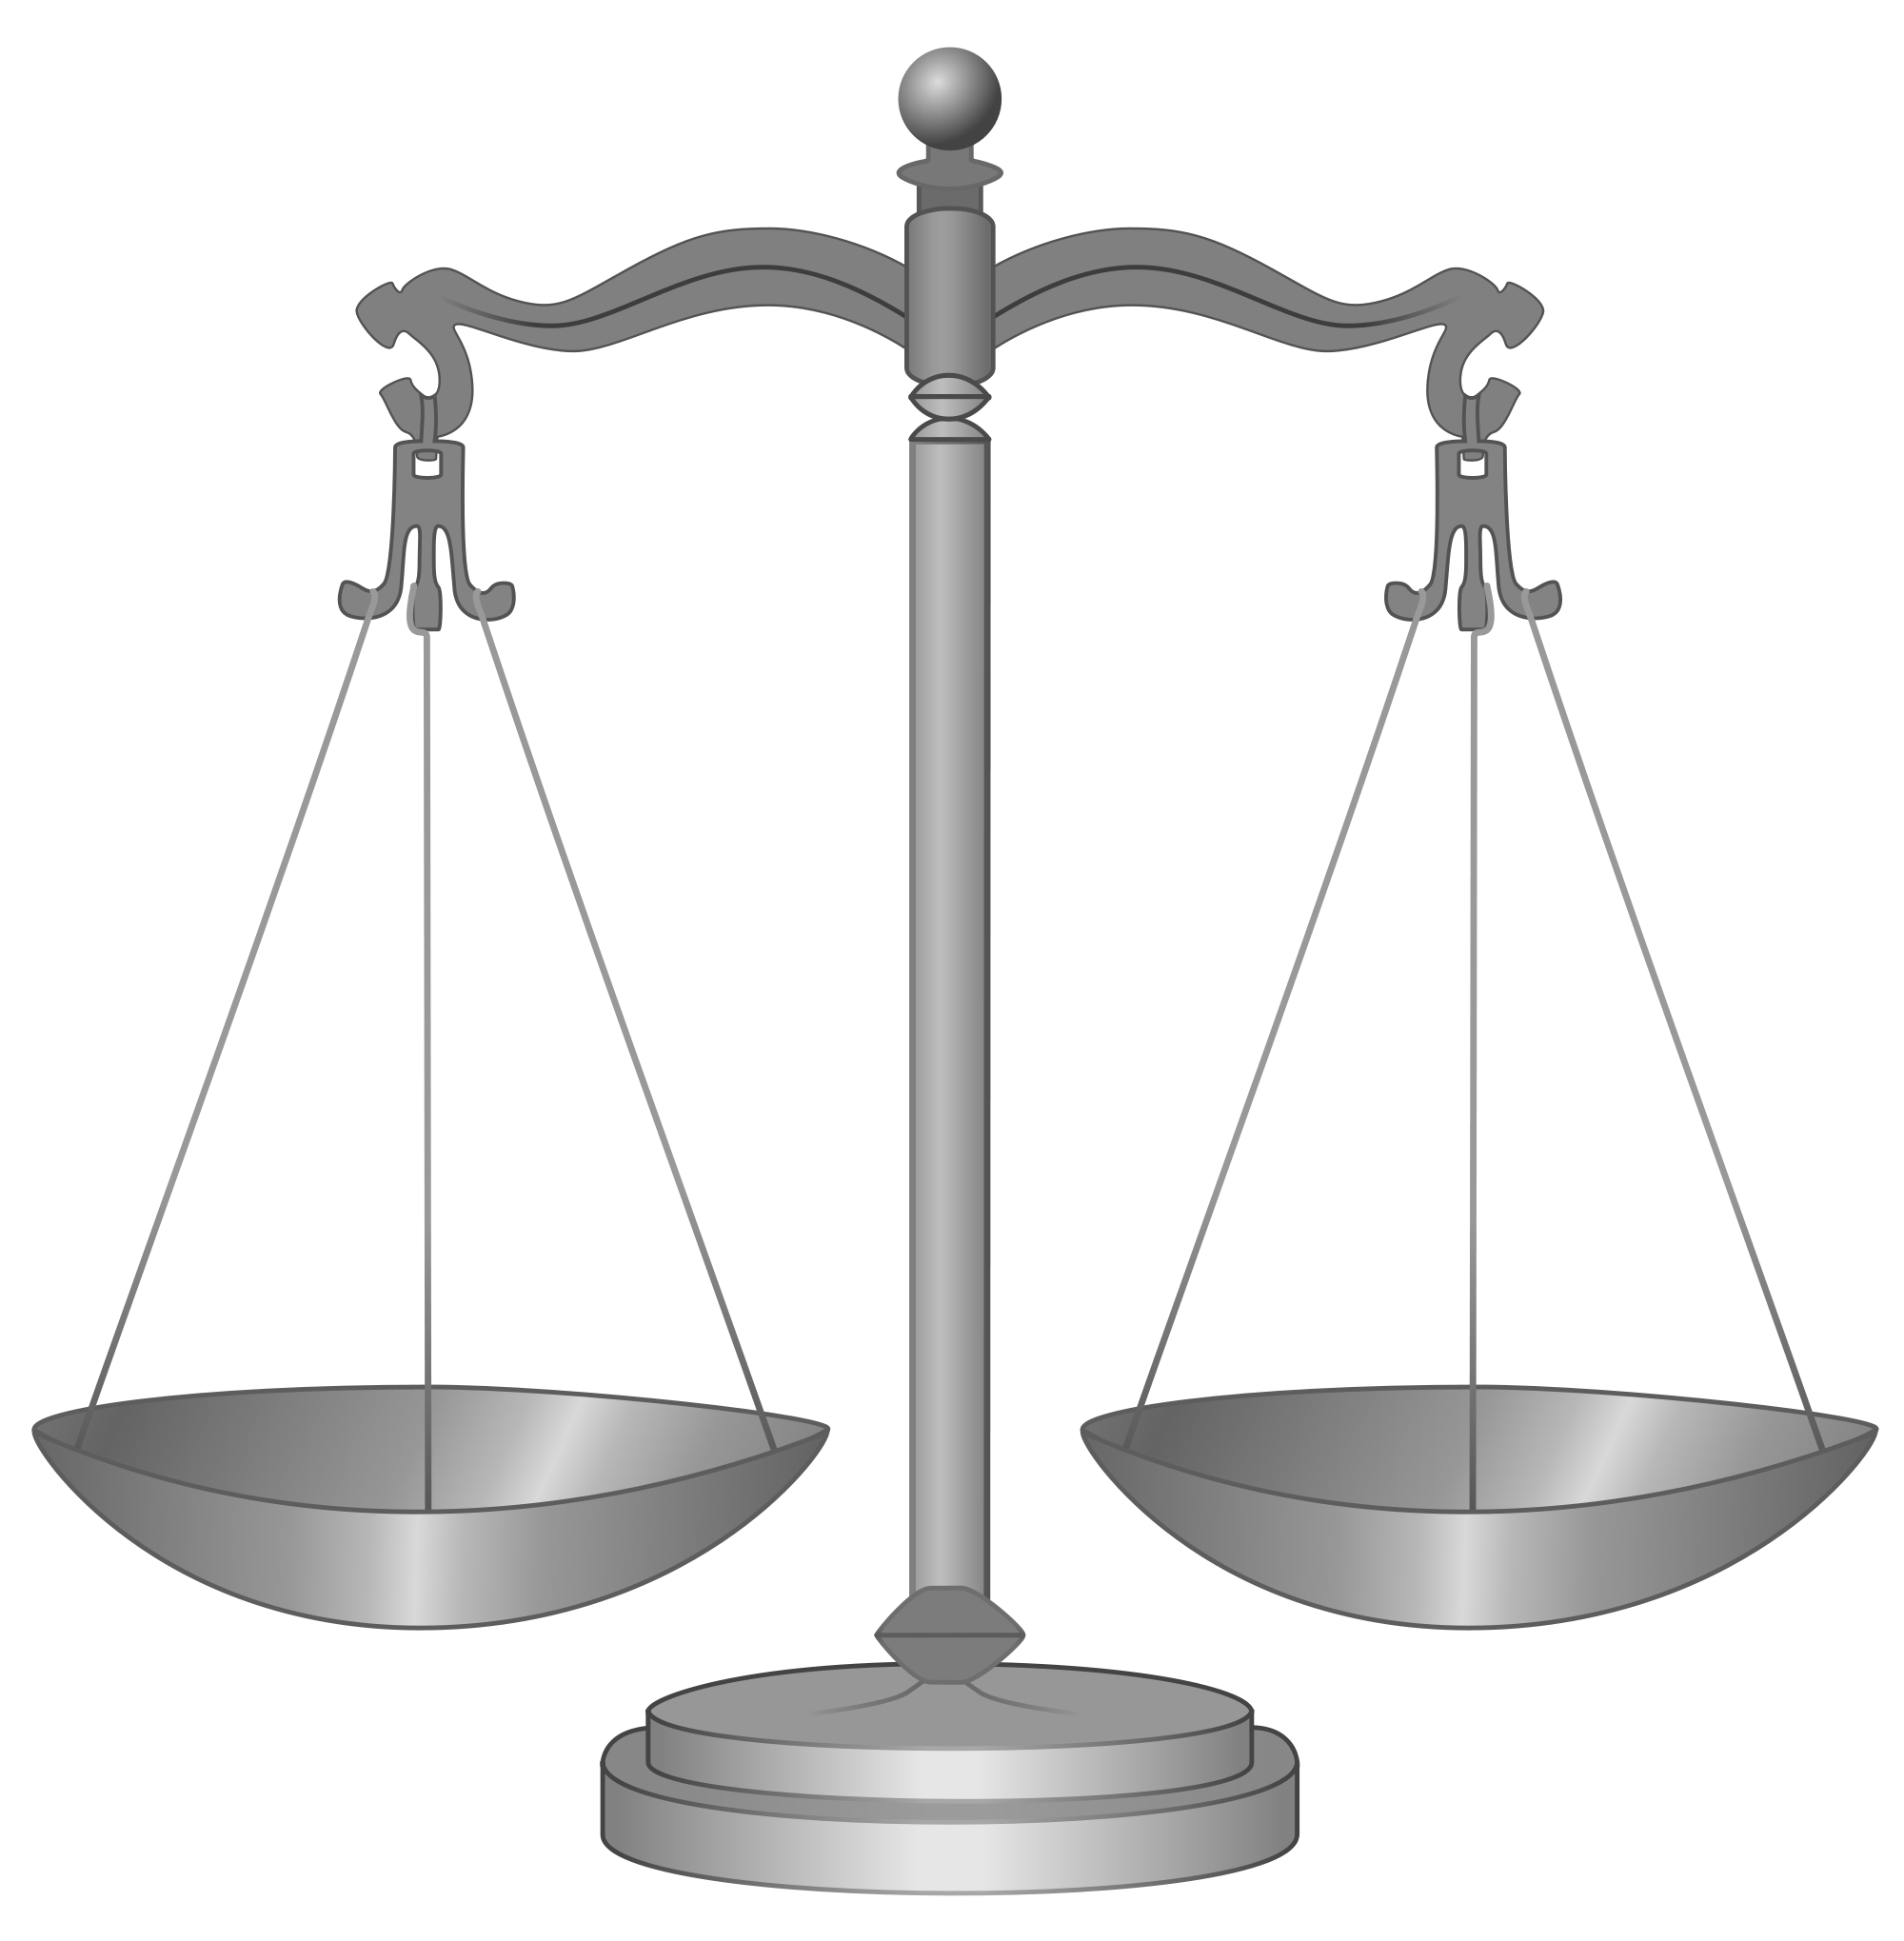 File:Balanced scale of Justic